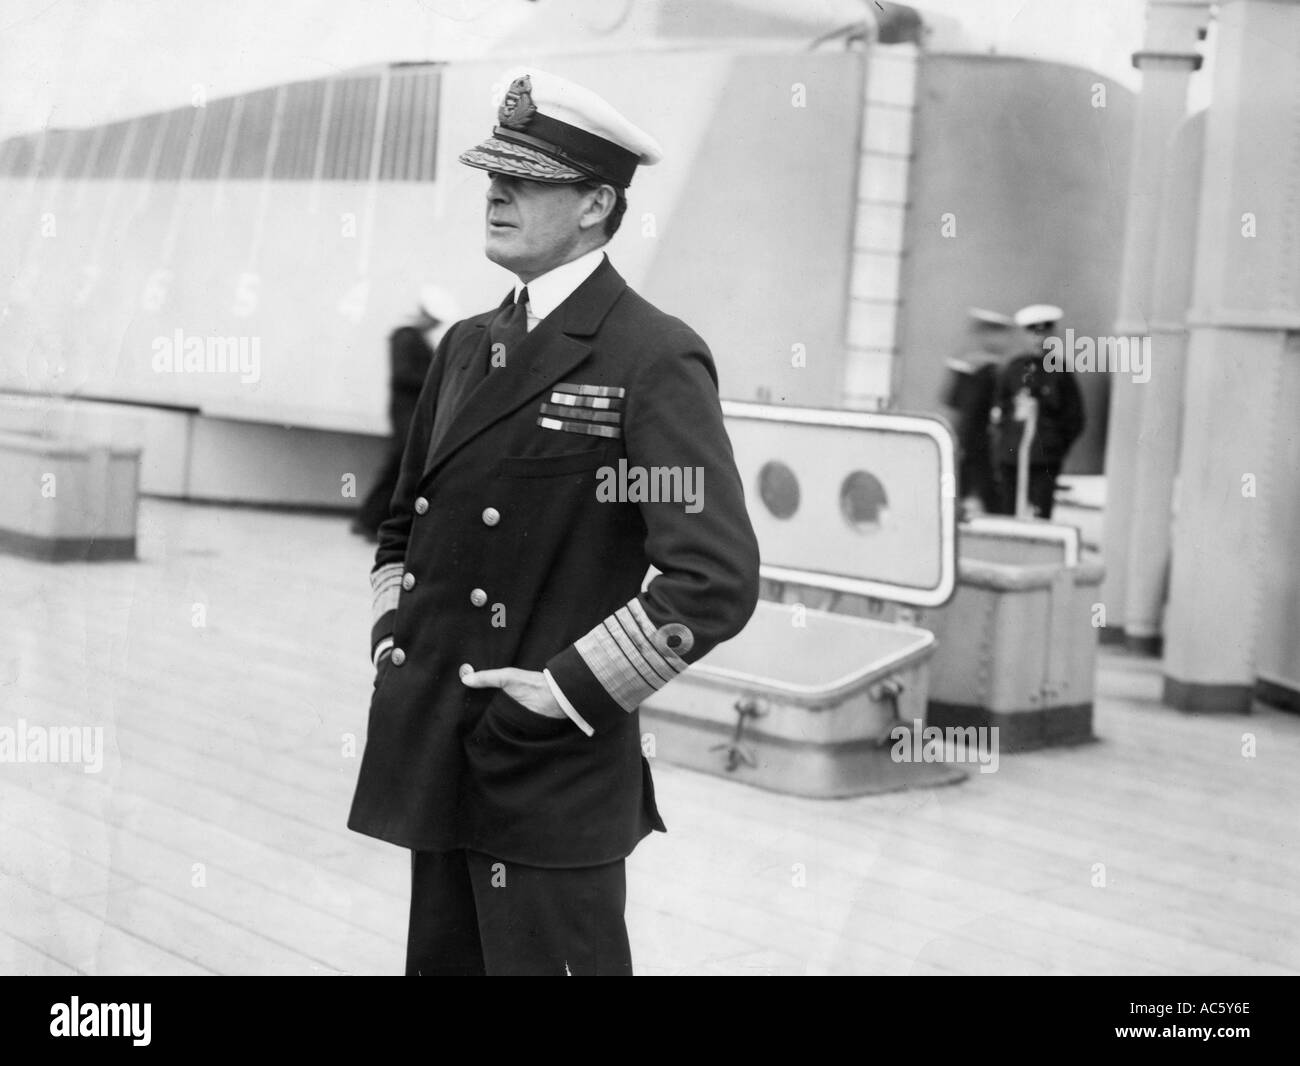 Admiral Sir DAVID BEATTY 1871 1936 fought at most of the naval engagements of WWI and later became First Sea Lord - Stock Image